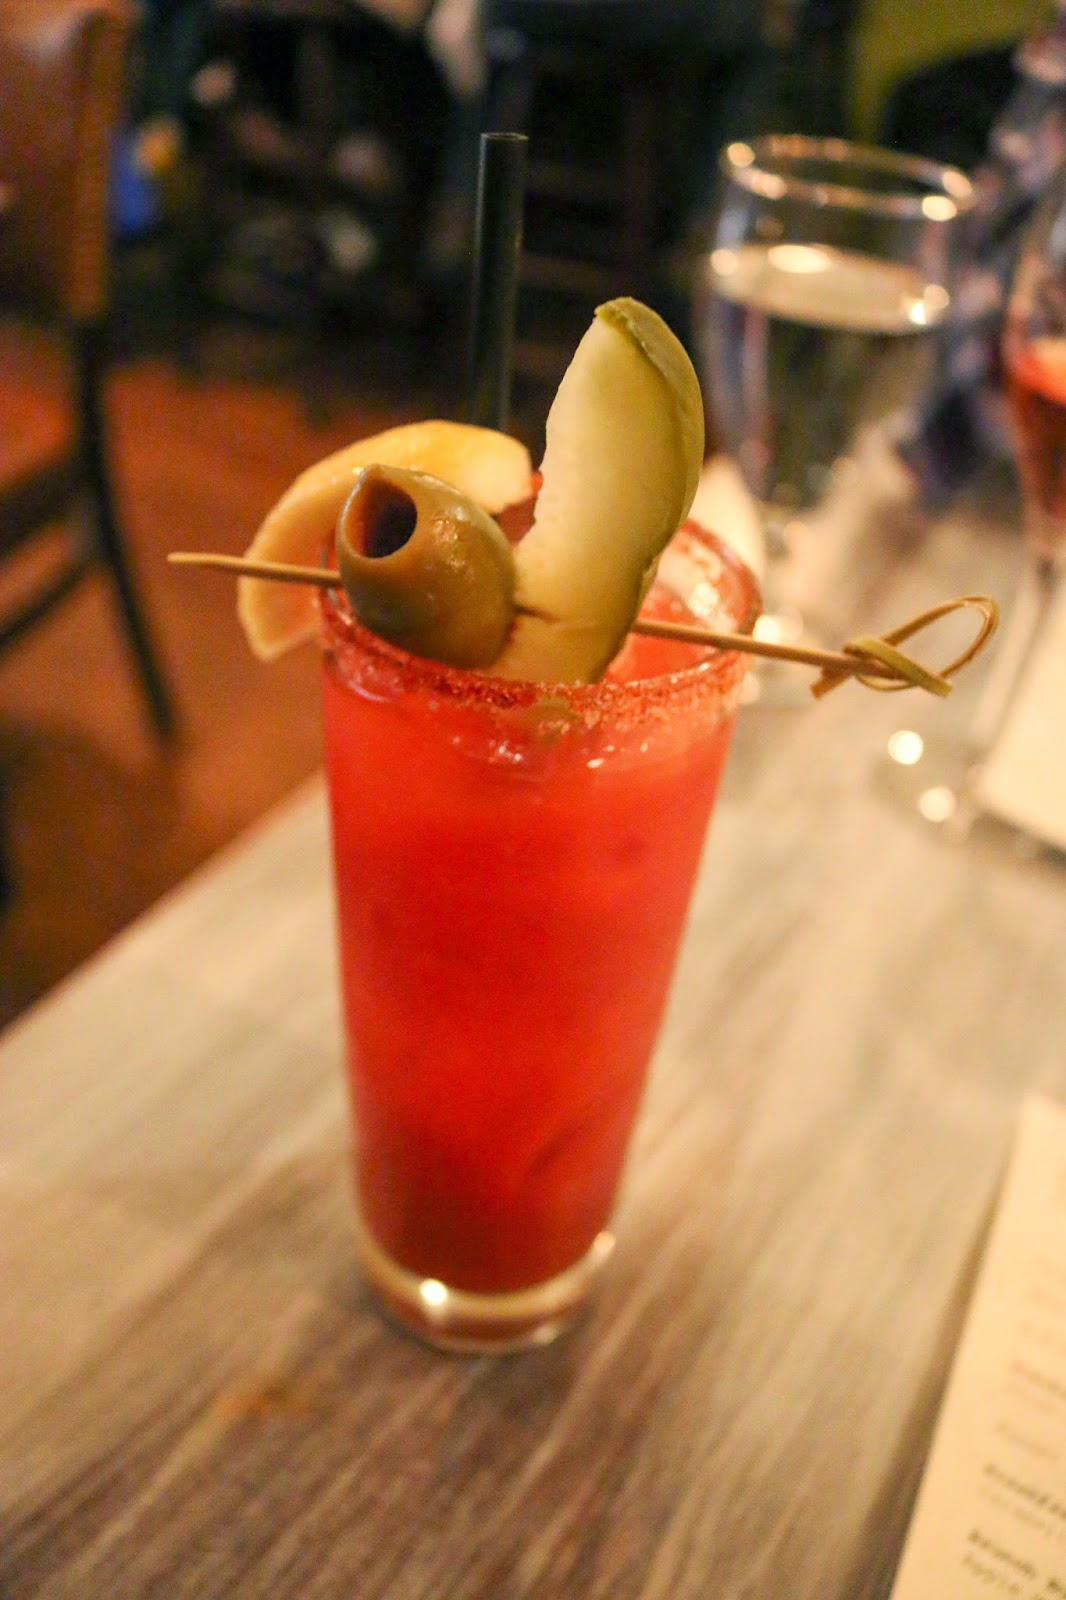 Philly Food Blog: Belly of the Pig - Crow and the Pitcher Bloody Mary